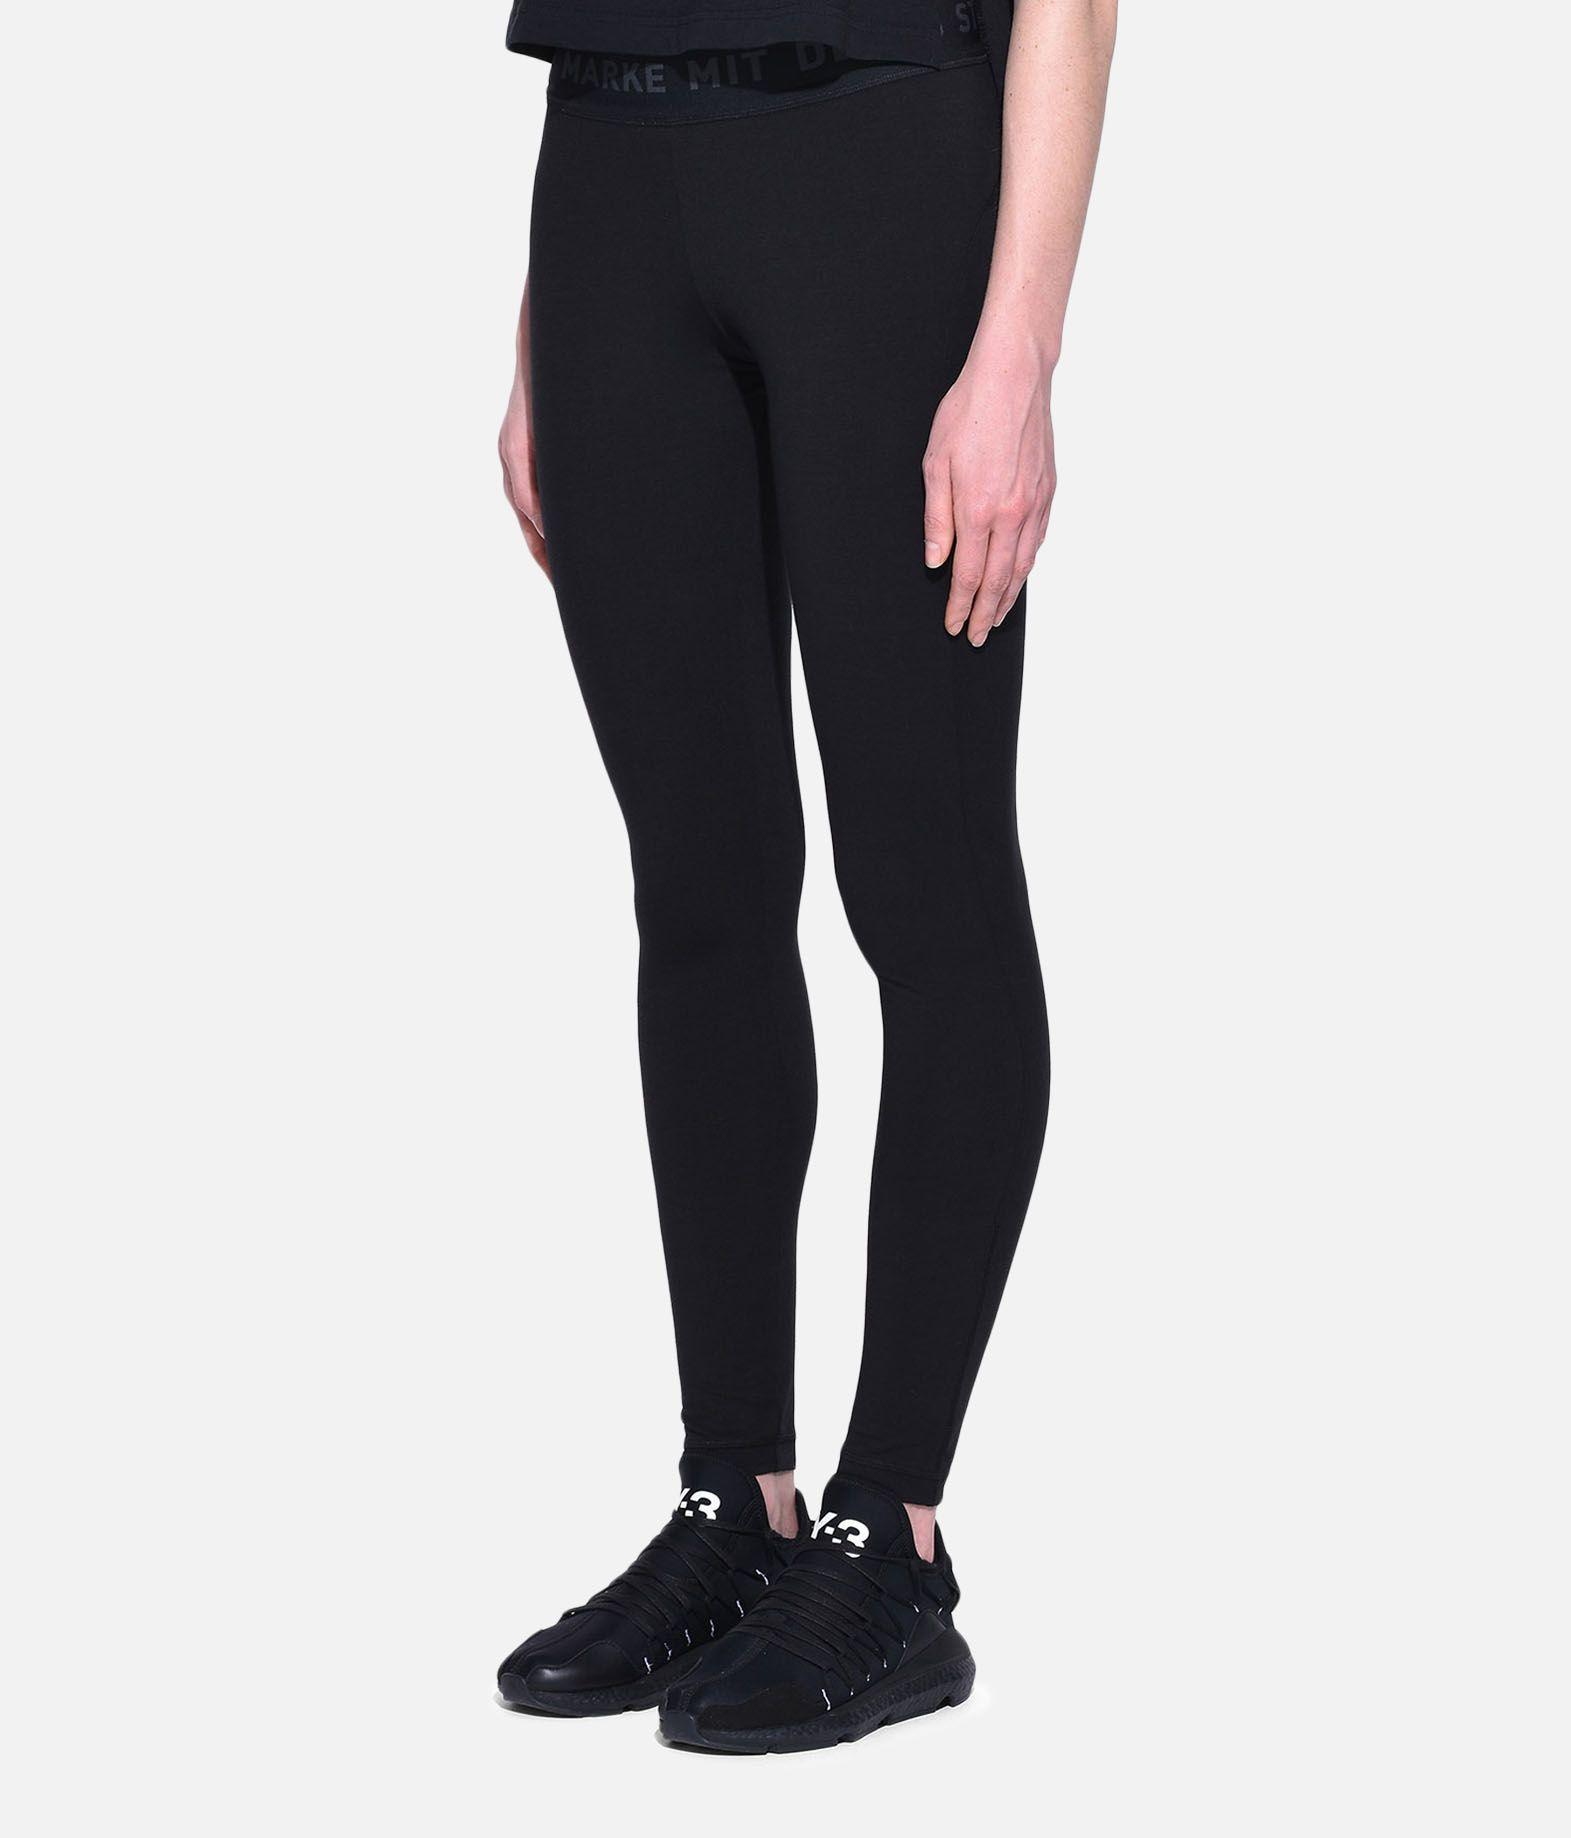 Y-3 Y-3 Logo Leggings Leggings Woman e